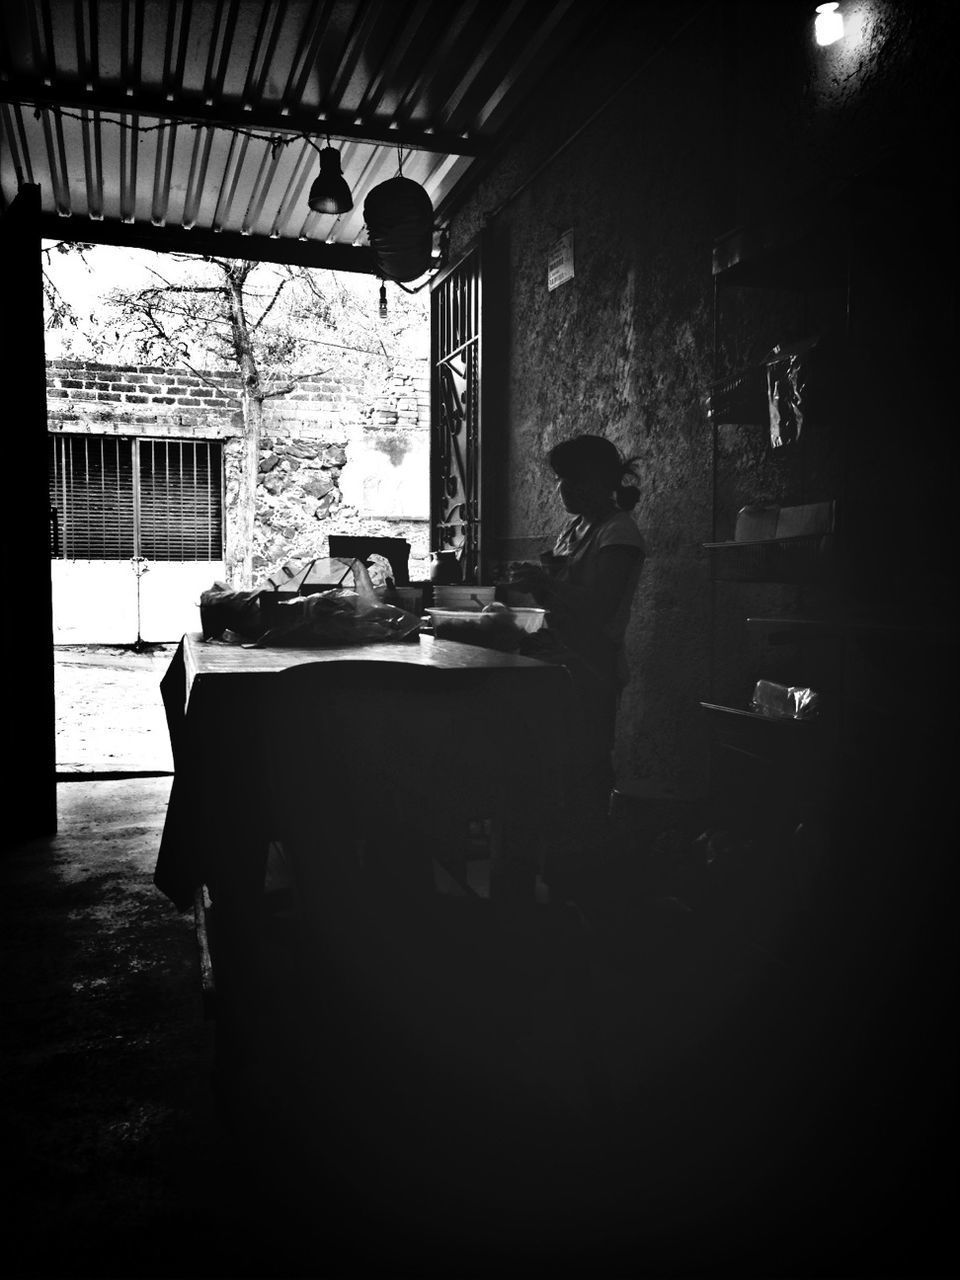 window, indoors, real people, day, architecture, one person, people